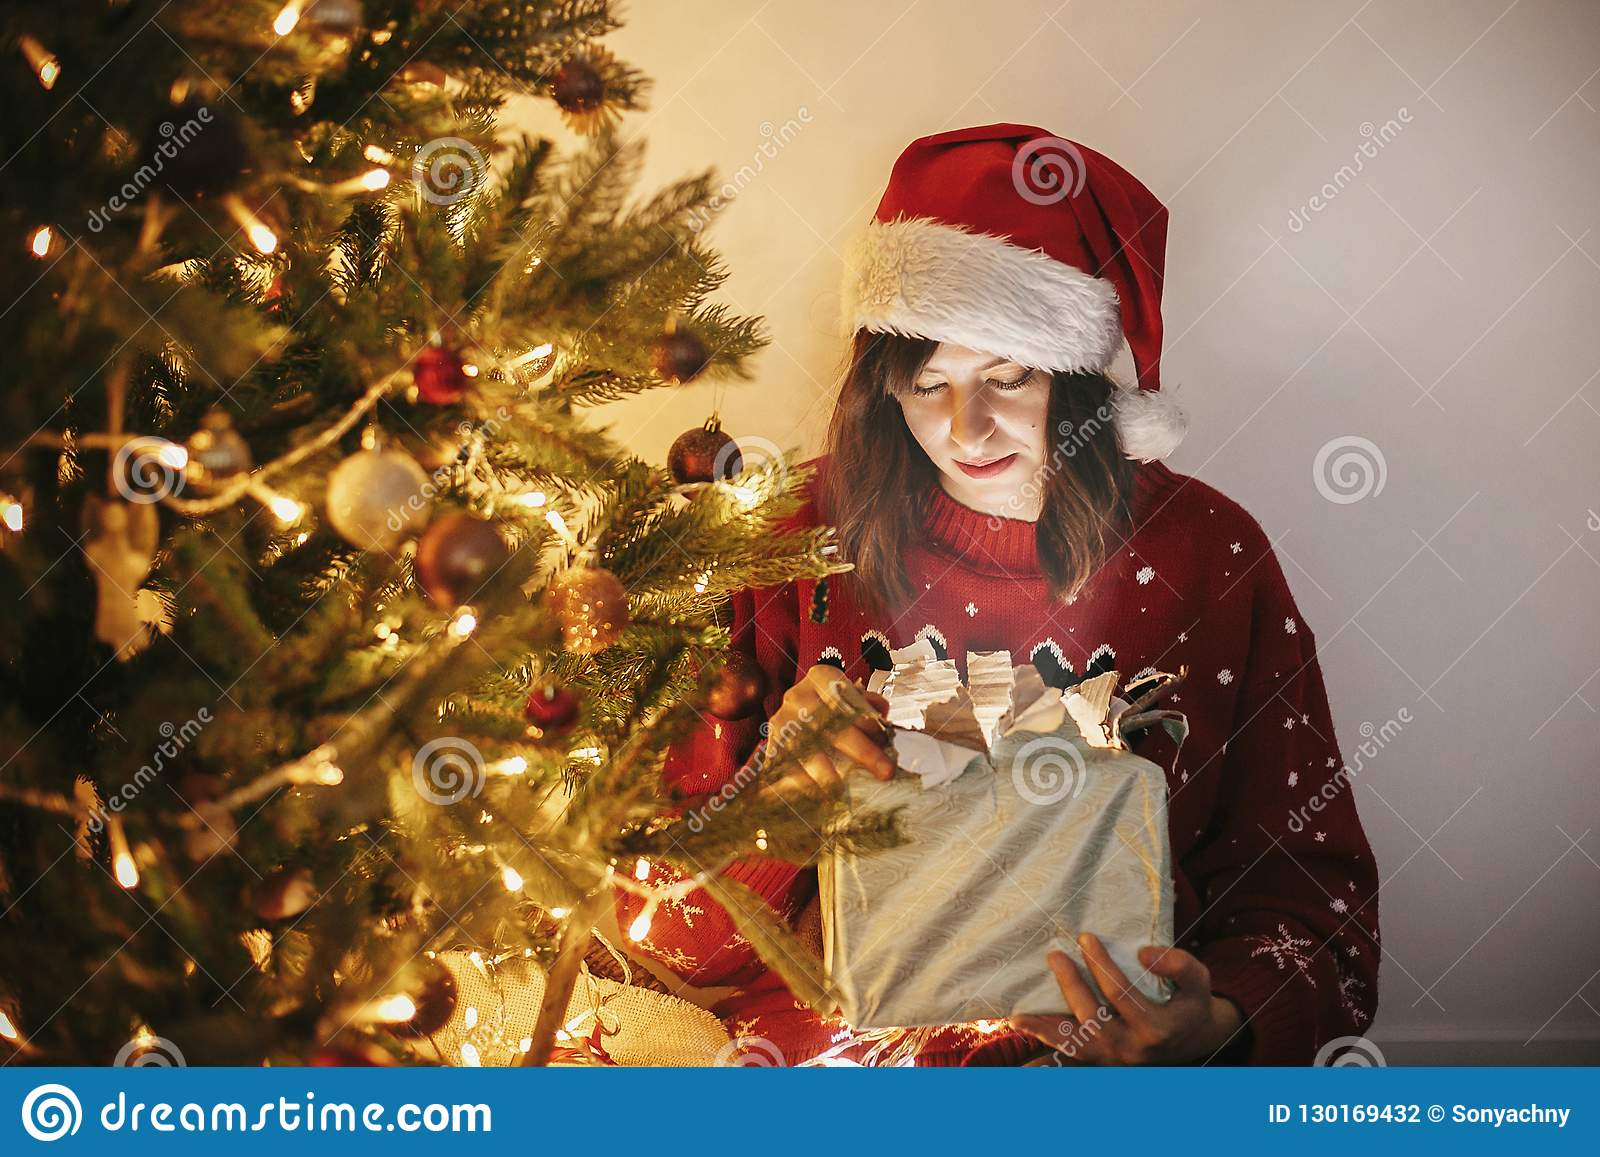 f1f7633fd4f73 Merry Christmas. Happy Girl In Santa Hat Opening Magic Christmas ...